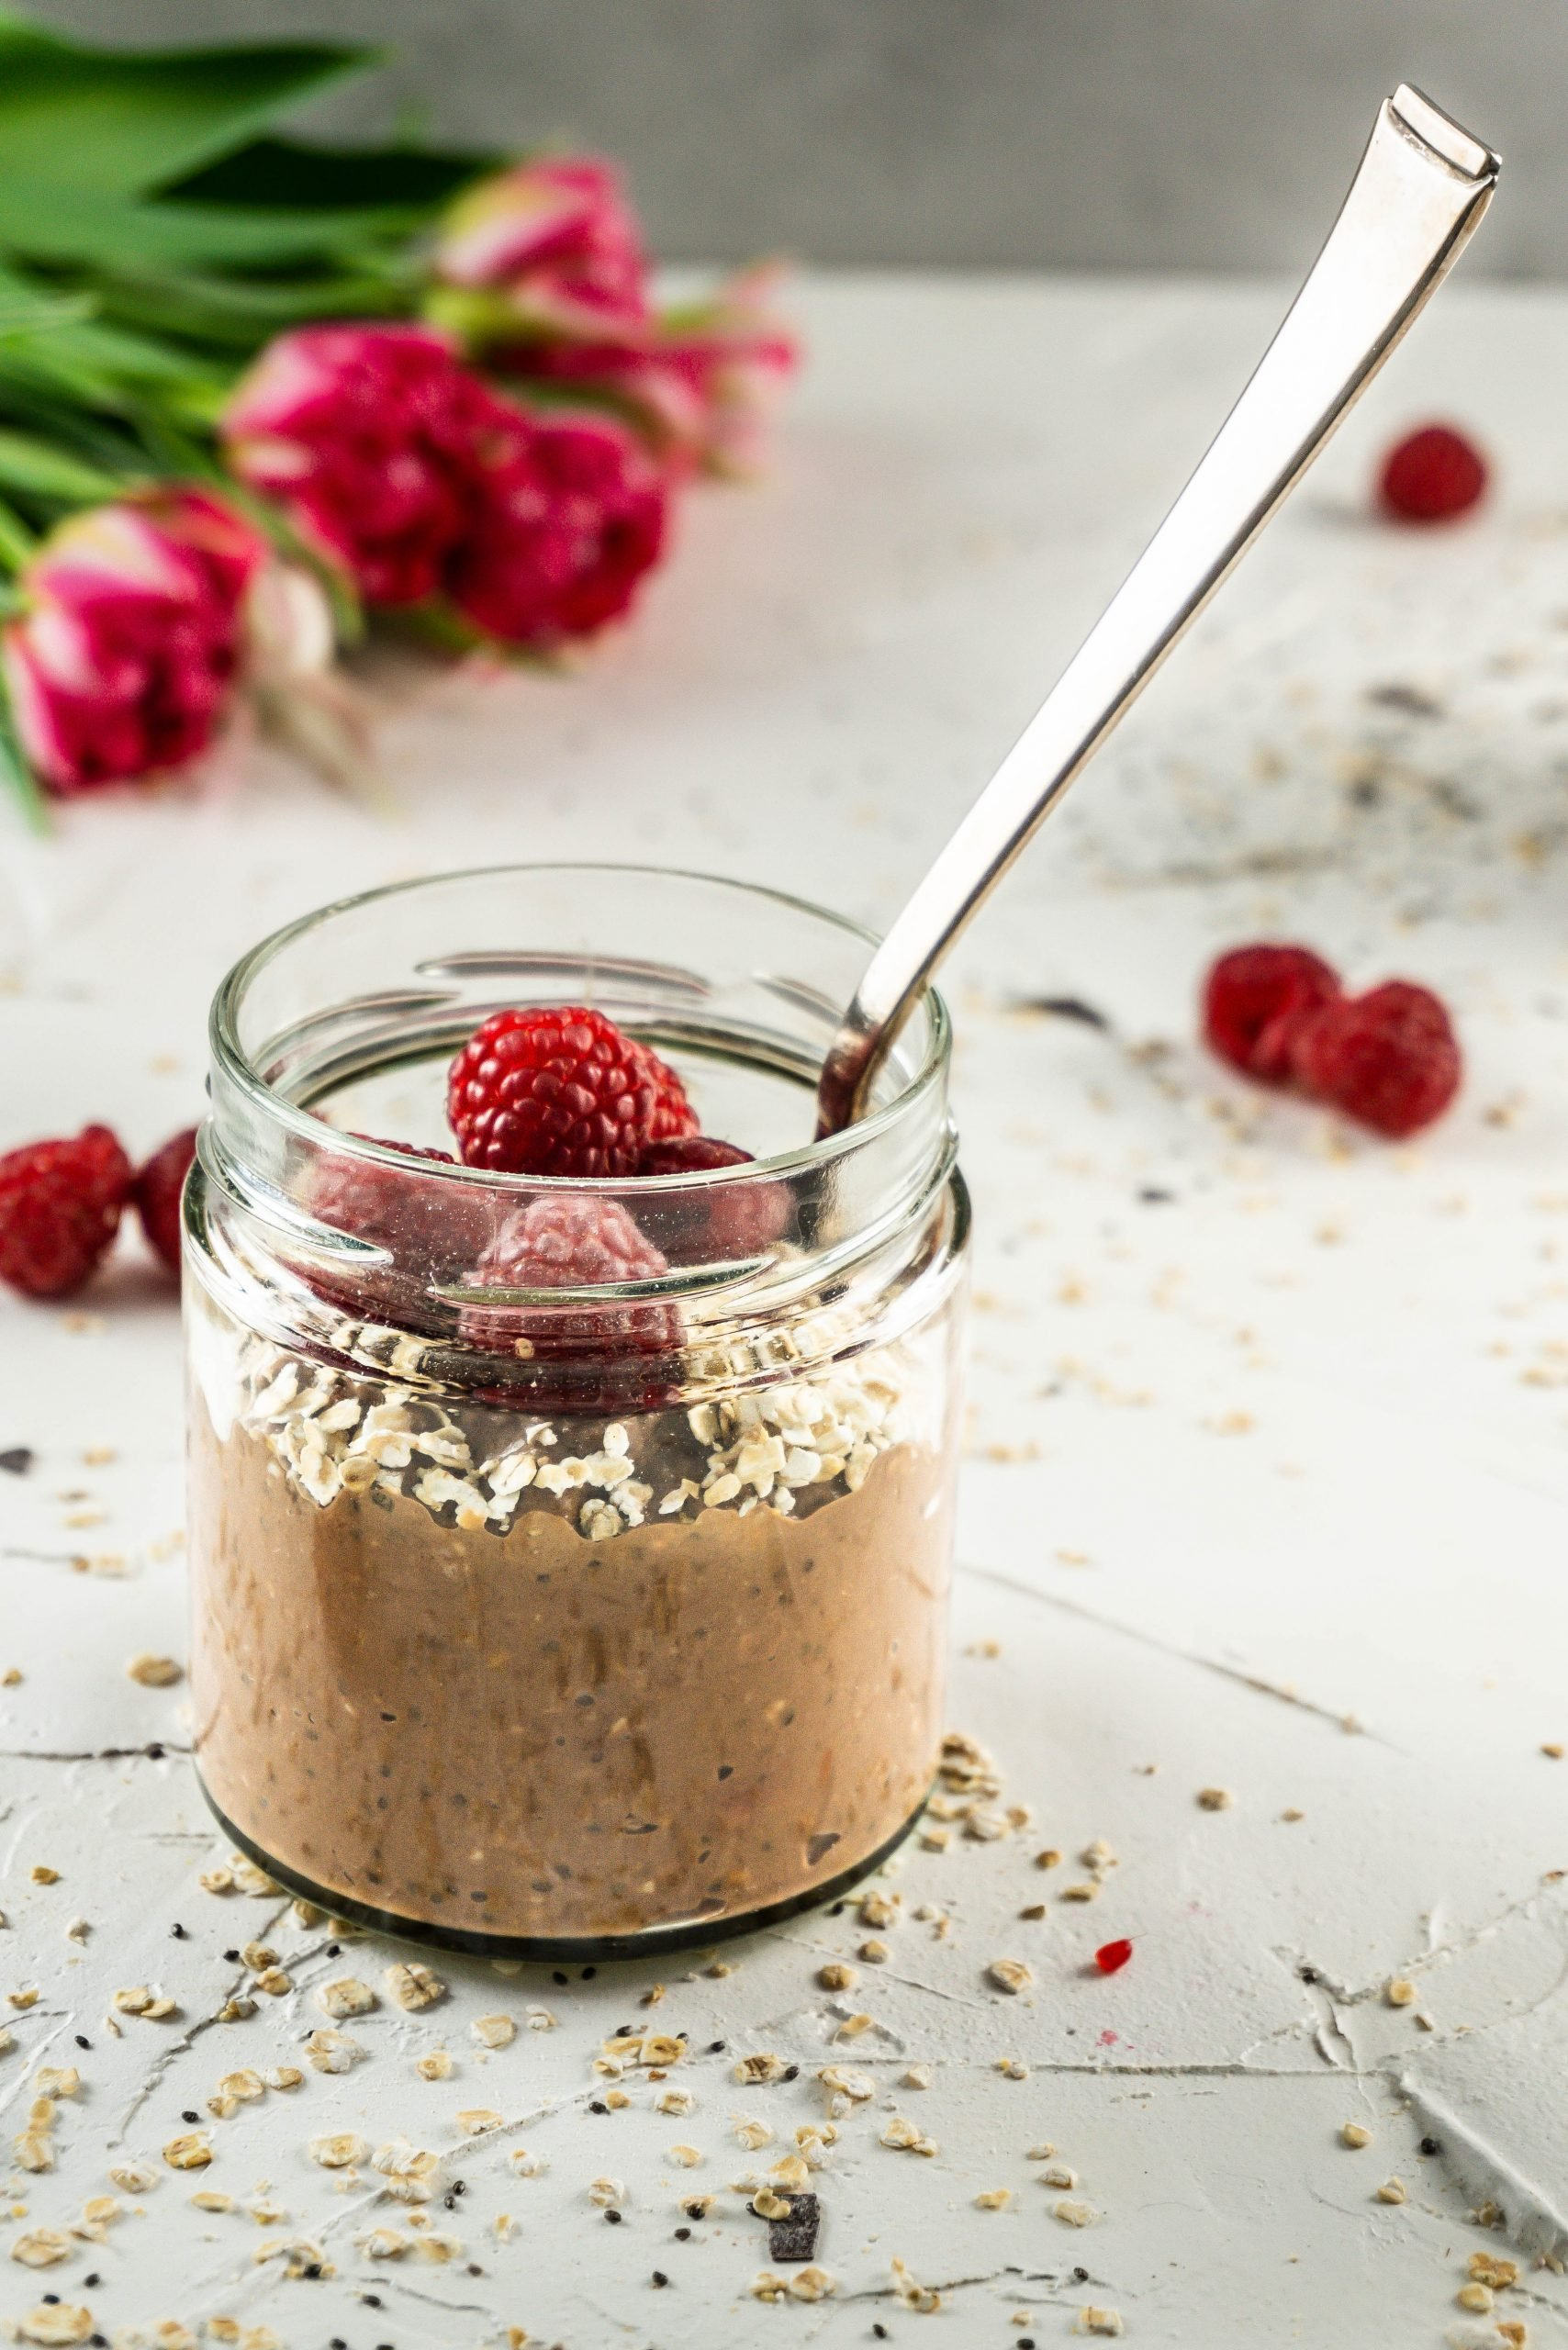 A glass of Chocolate Raspberry Overnight Oats topped with raspberries and a spoon stuck into it